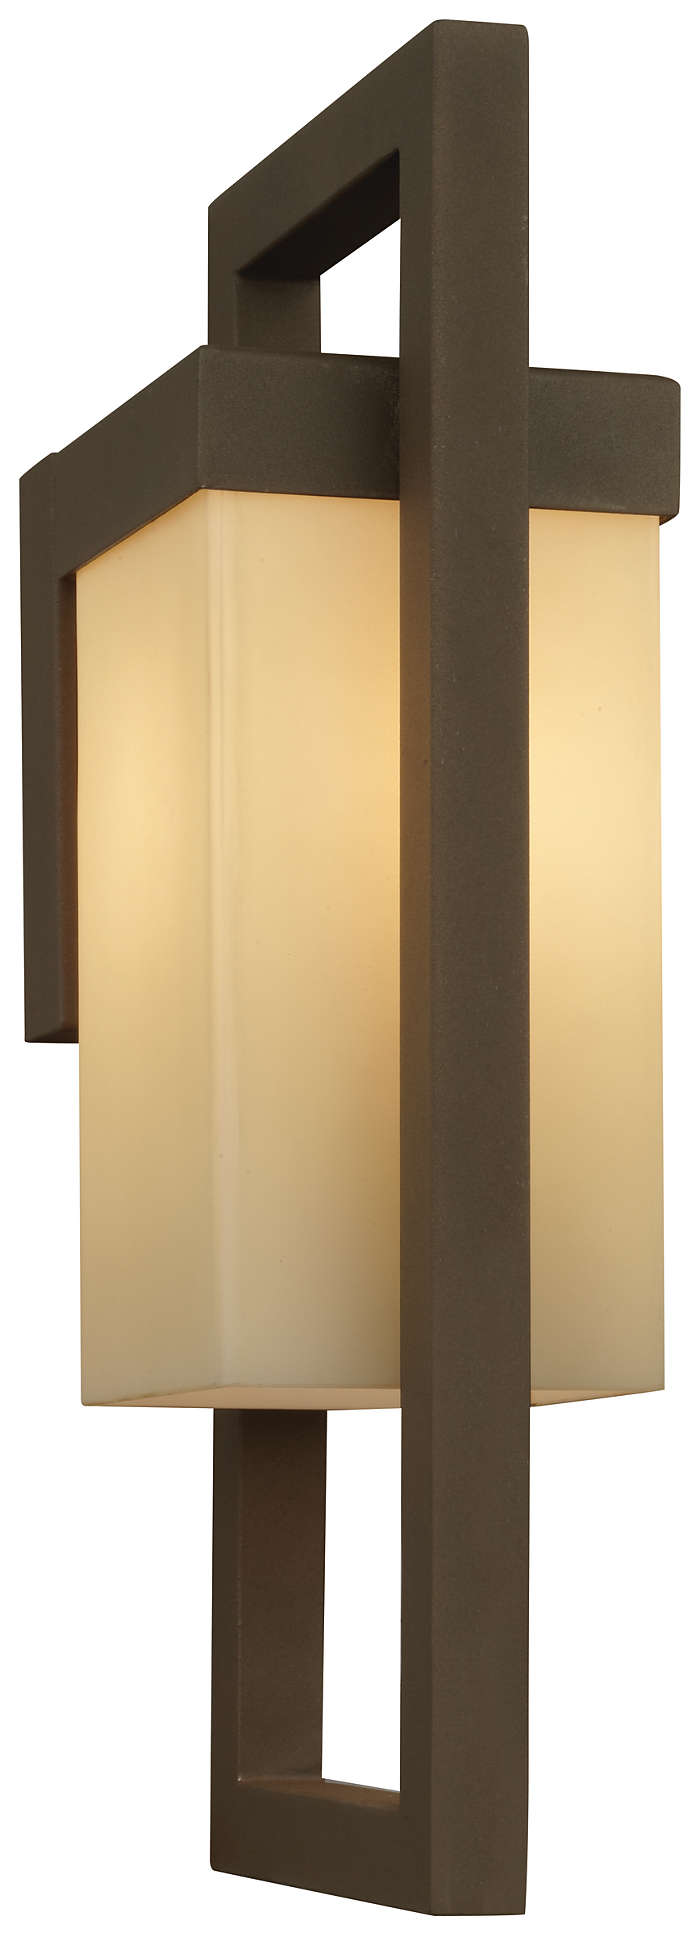 City 1-light Outdoor Wall in Bronze finish